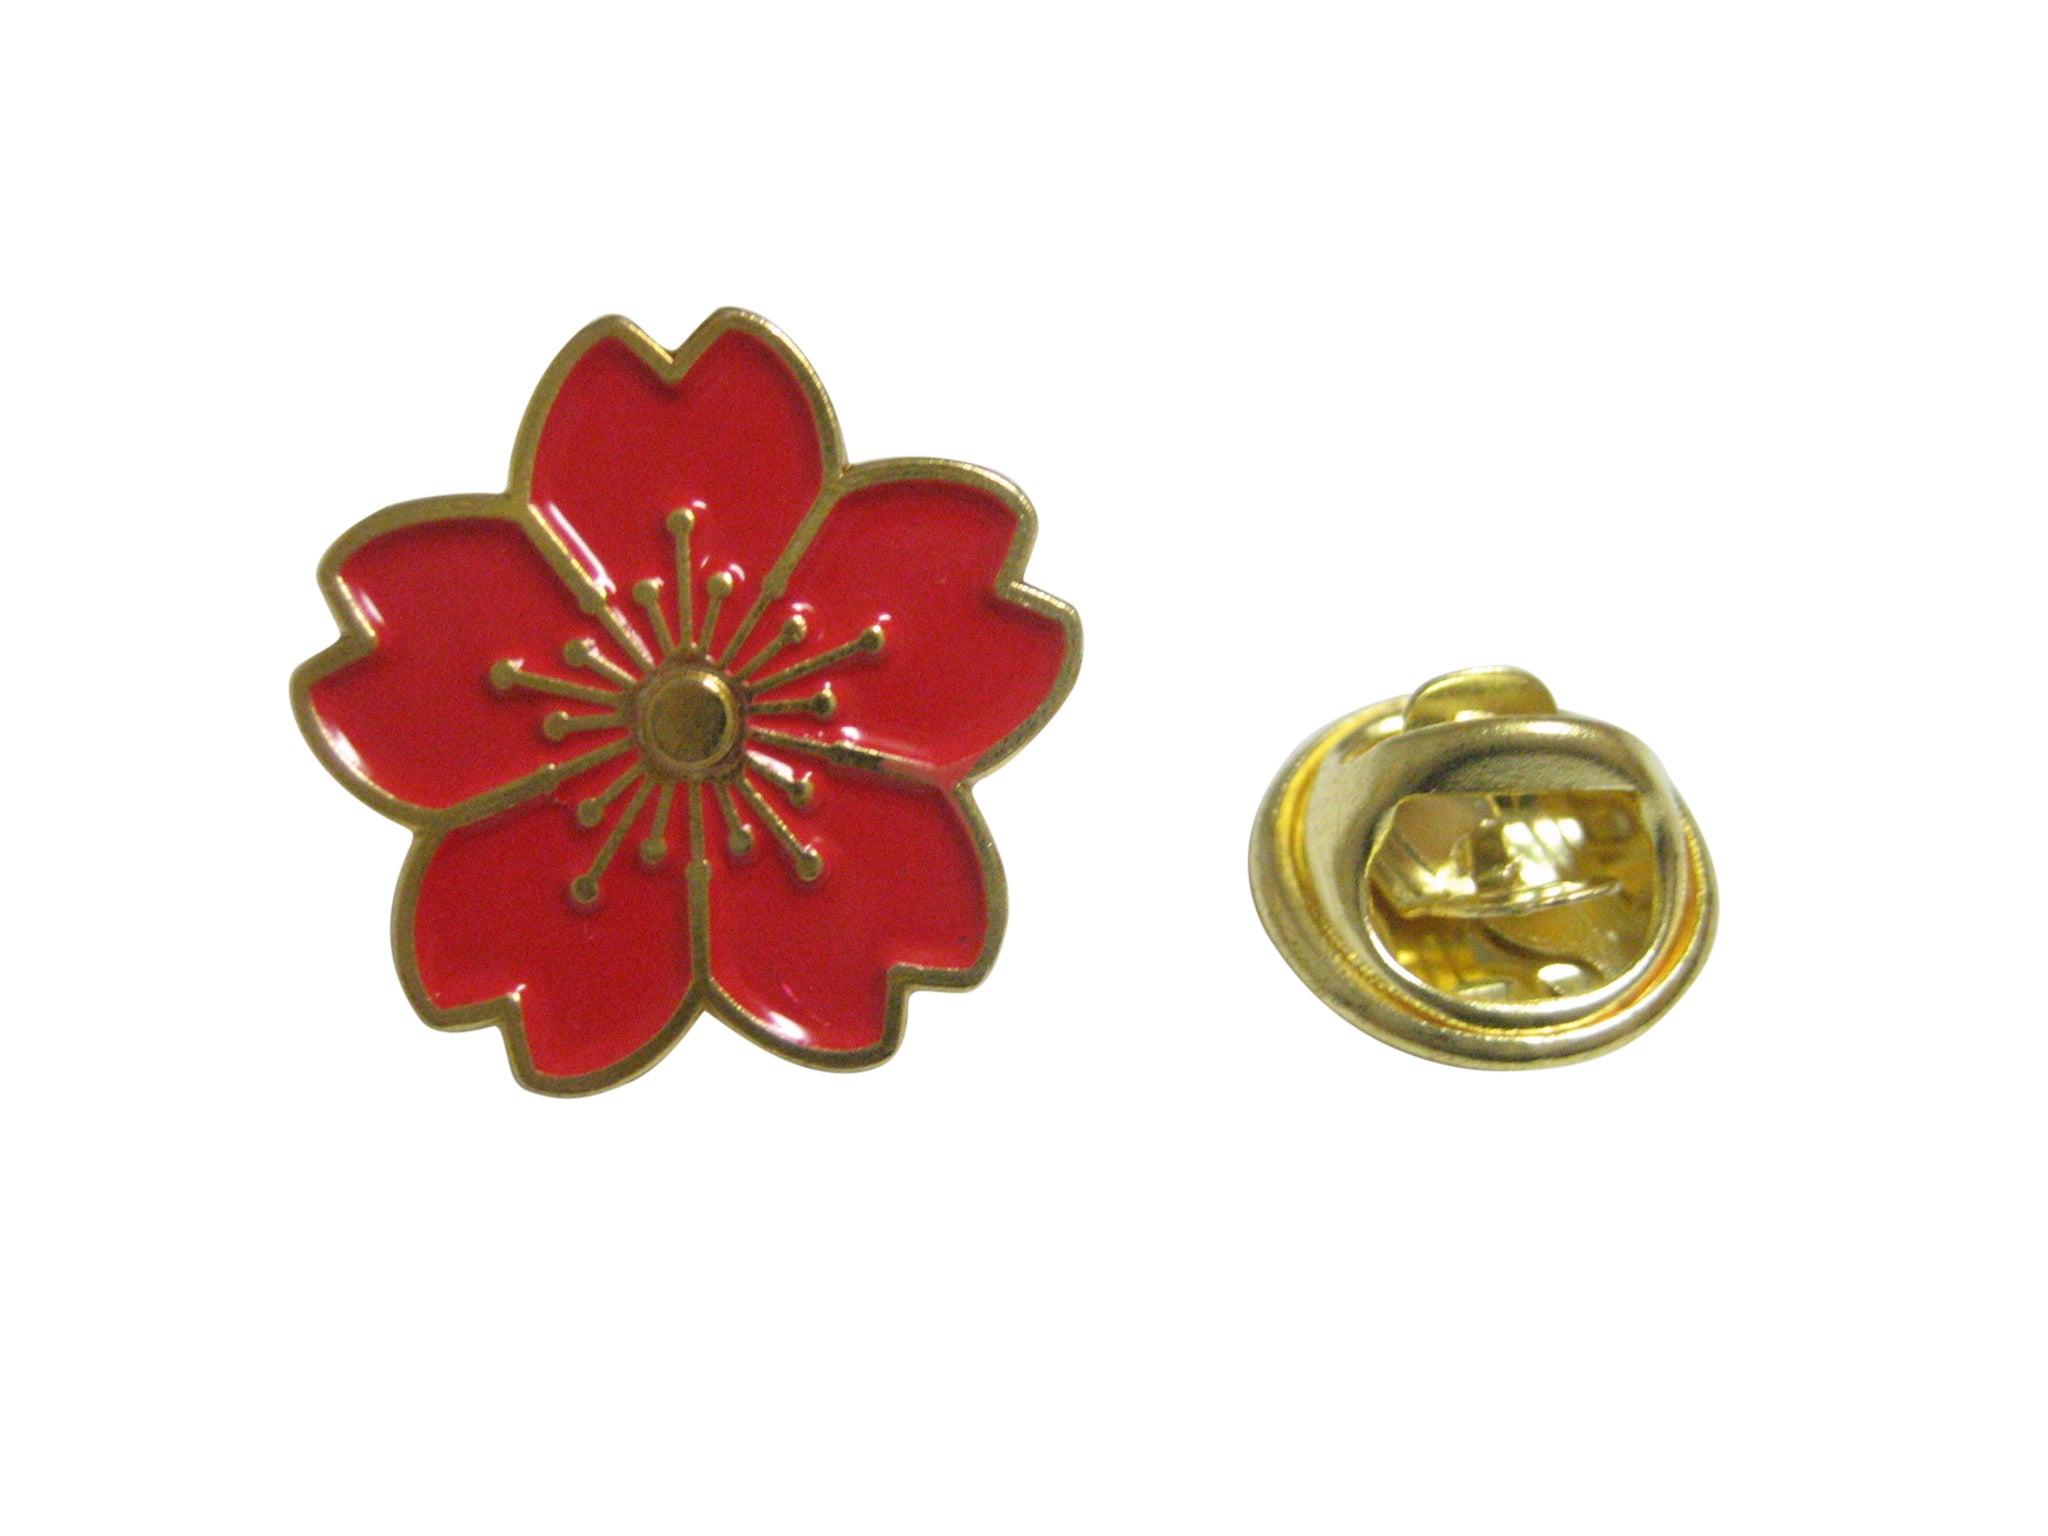 Red Cherry Blossom Flower Lapel Pin